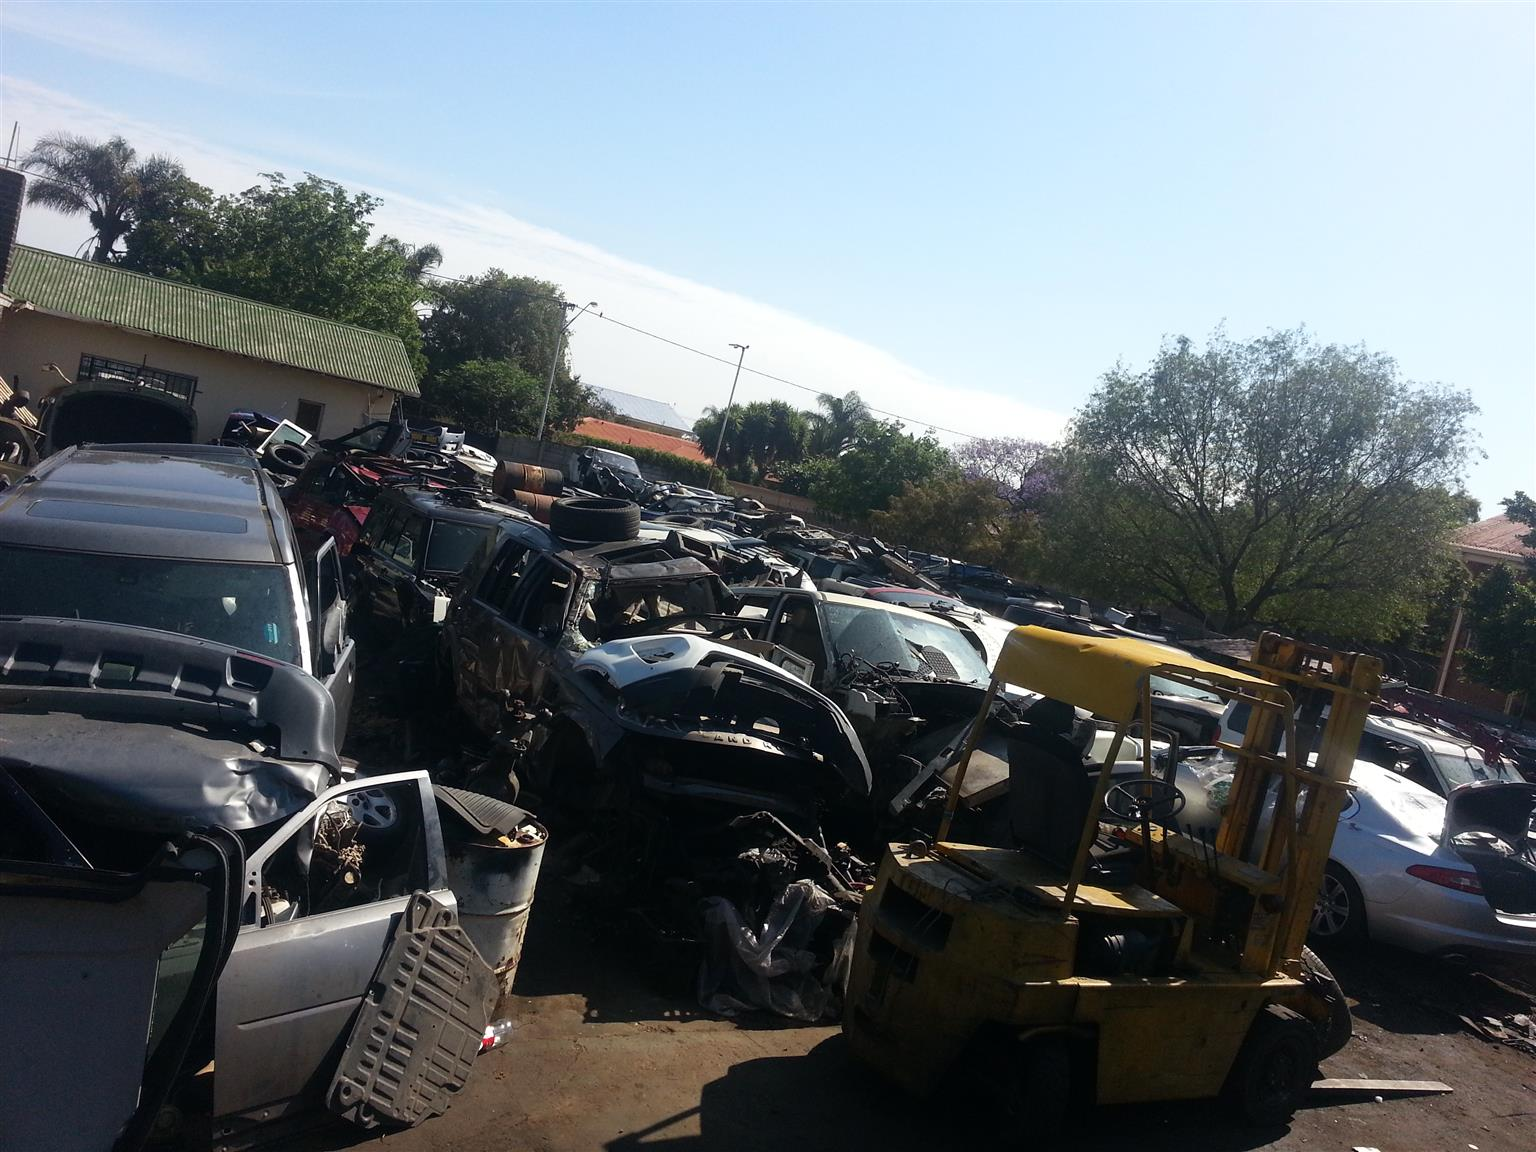 Get quality used Land Rover parts | Auto Ezi